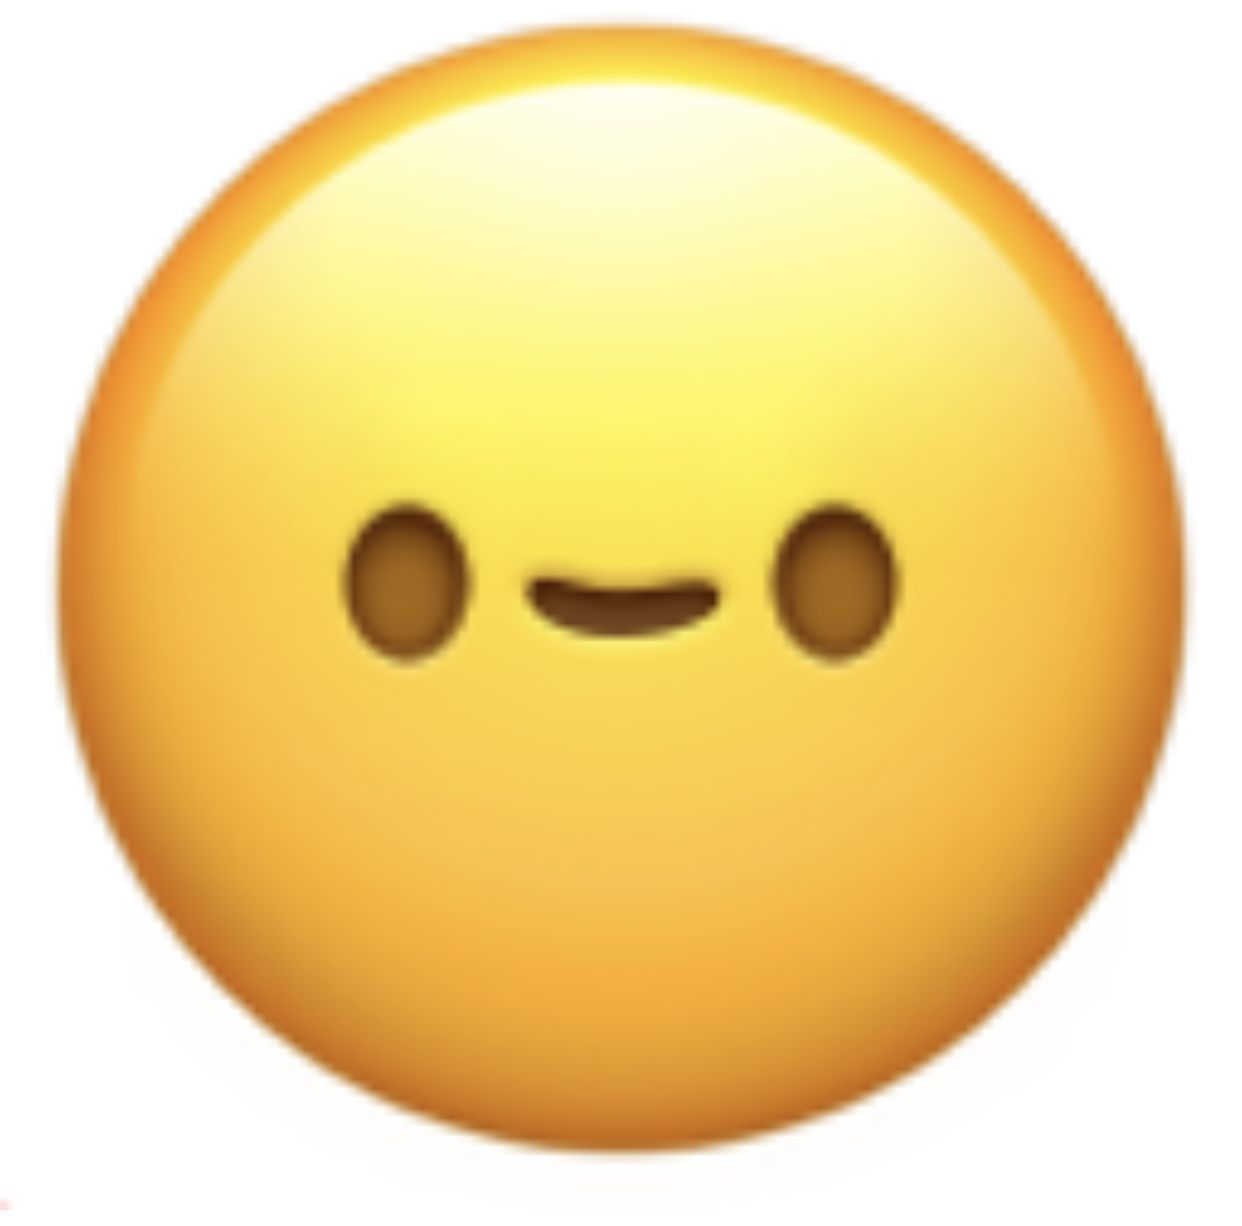 The Book Of Cursed Emojis - Reaction Emojis In 2020